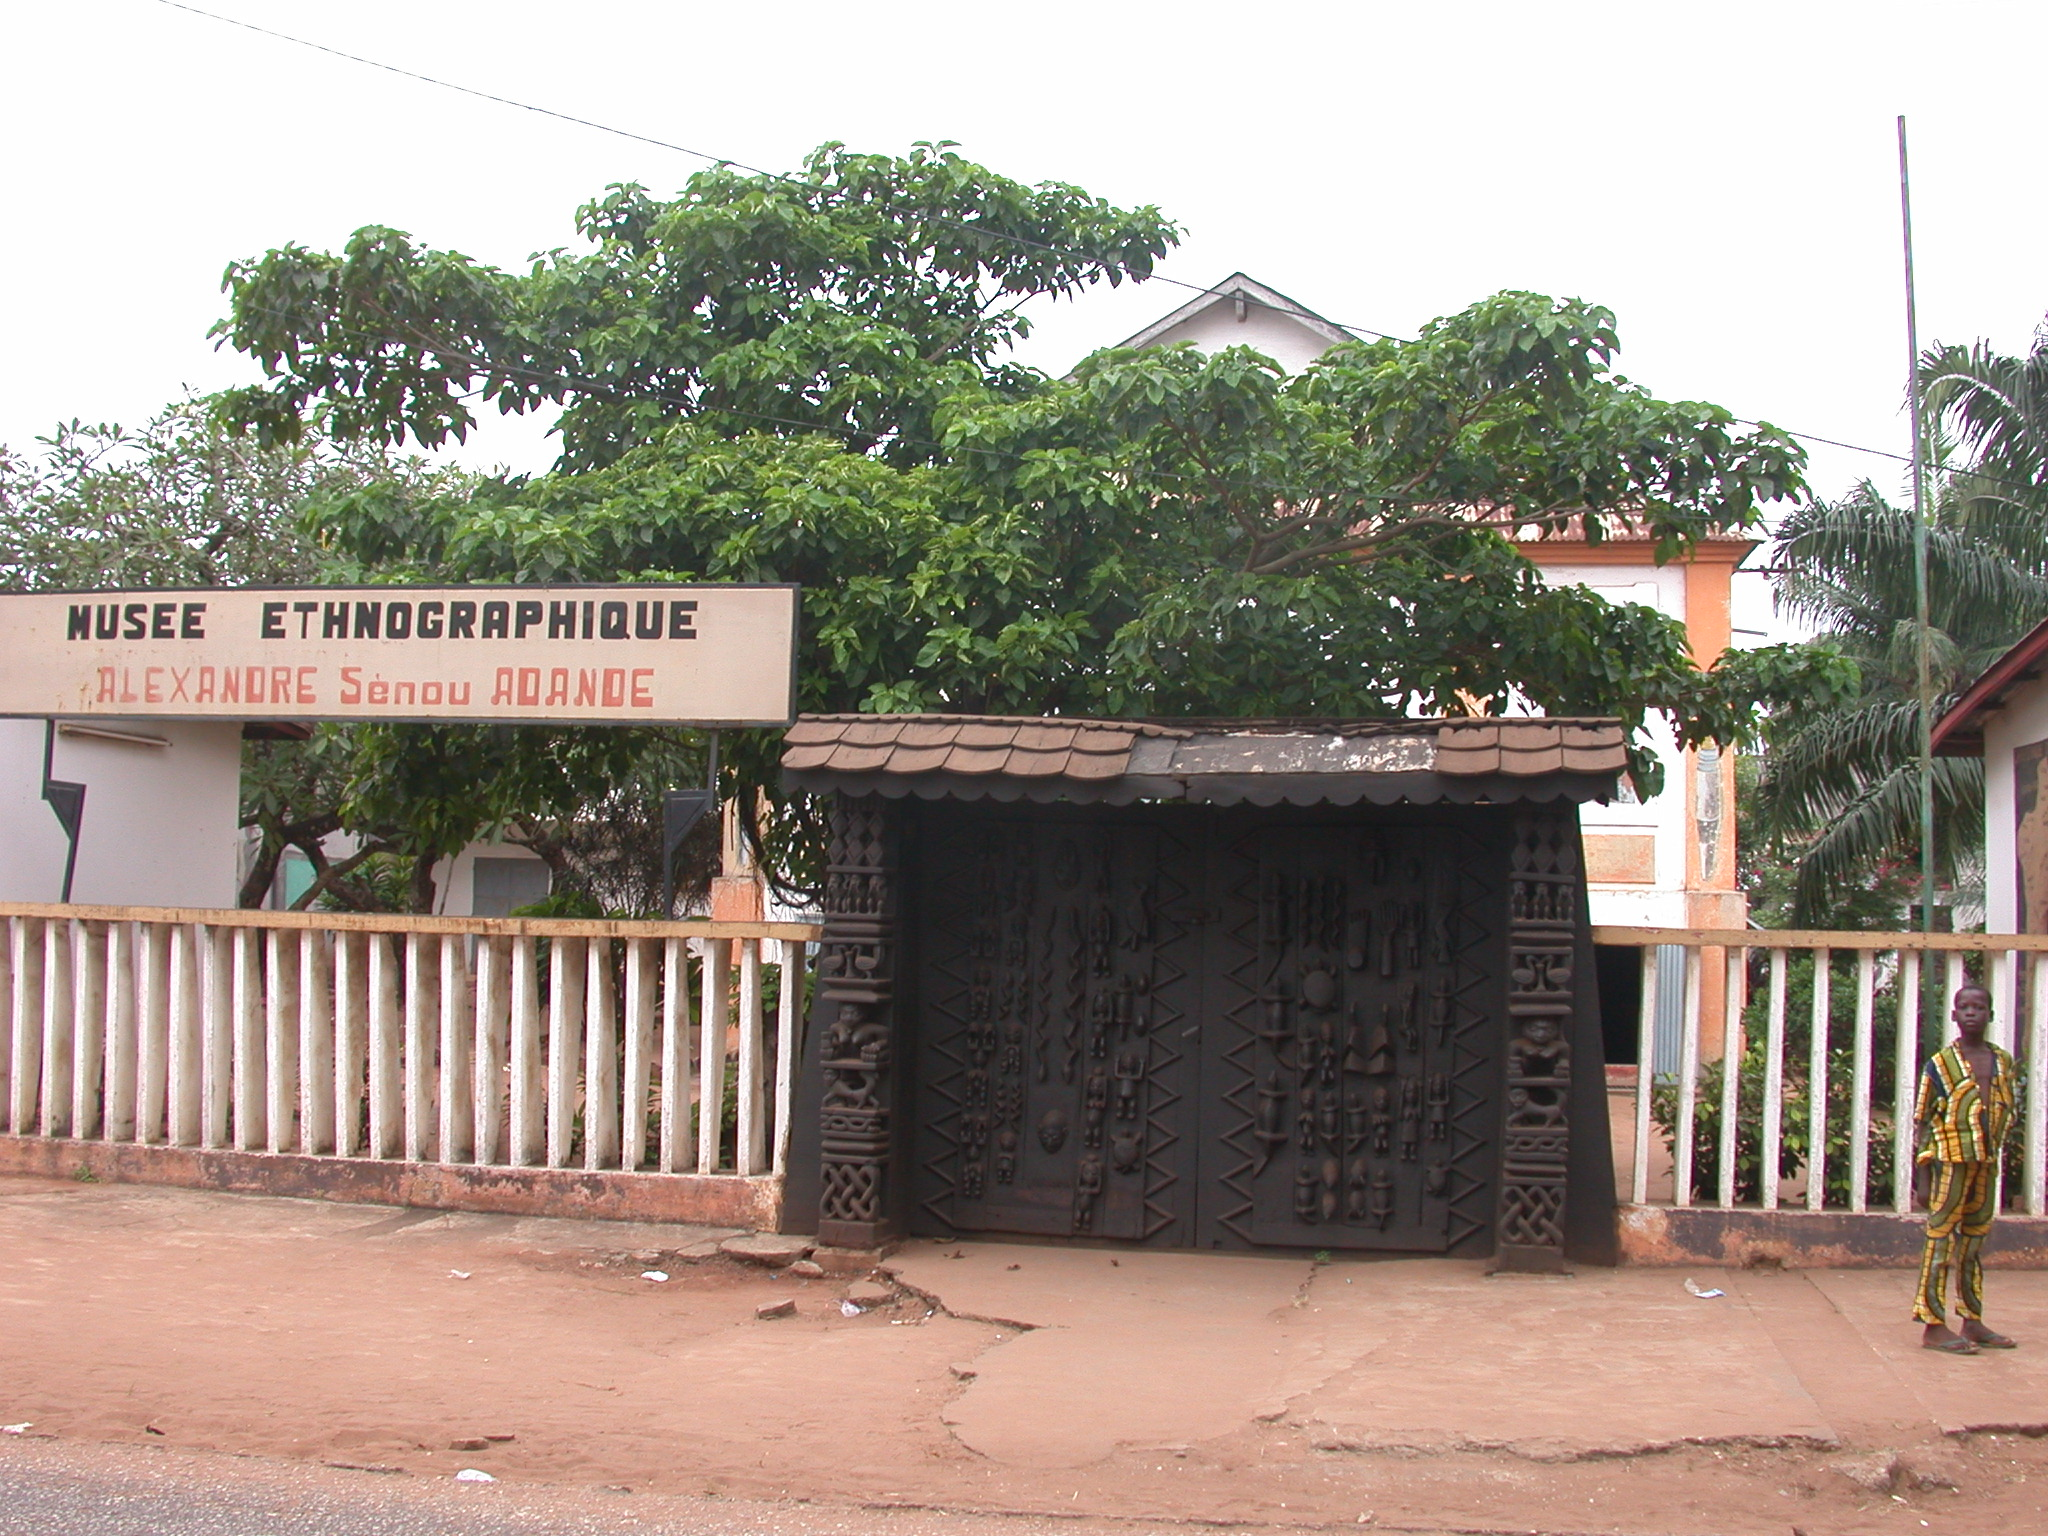 Sign and Ornate Gate of Musée Ethnographique, Porto Novo, Benin